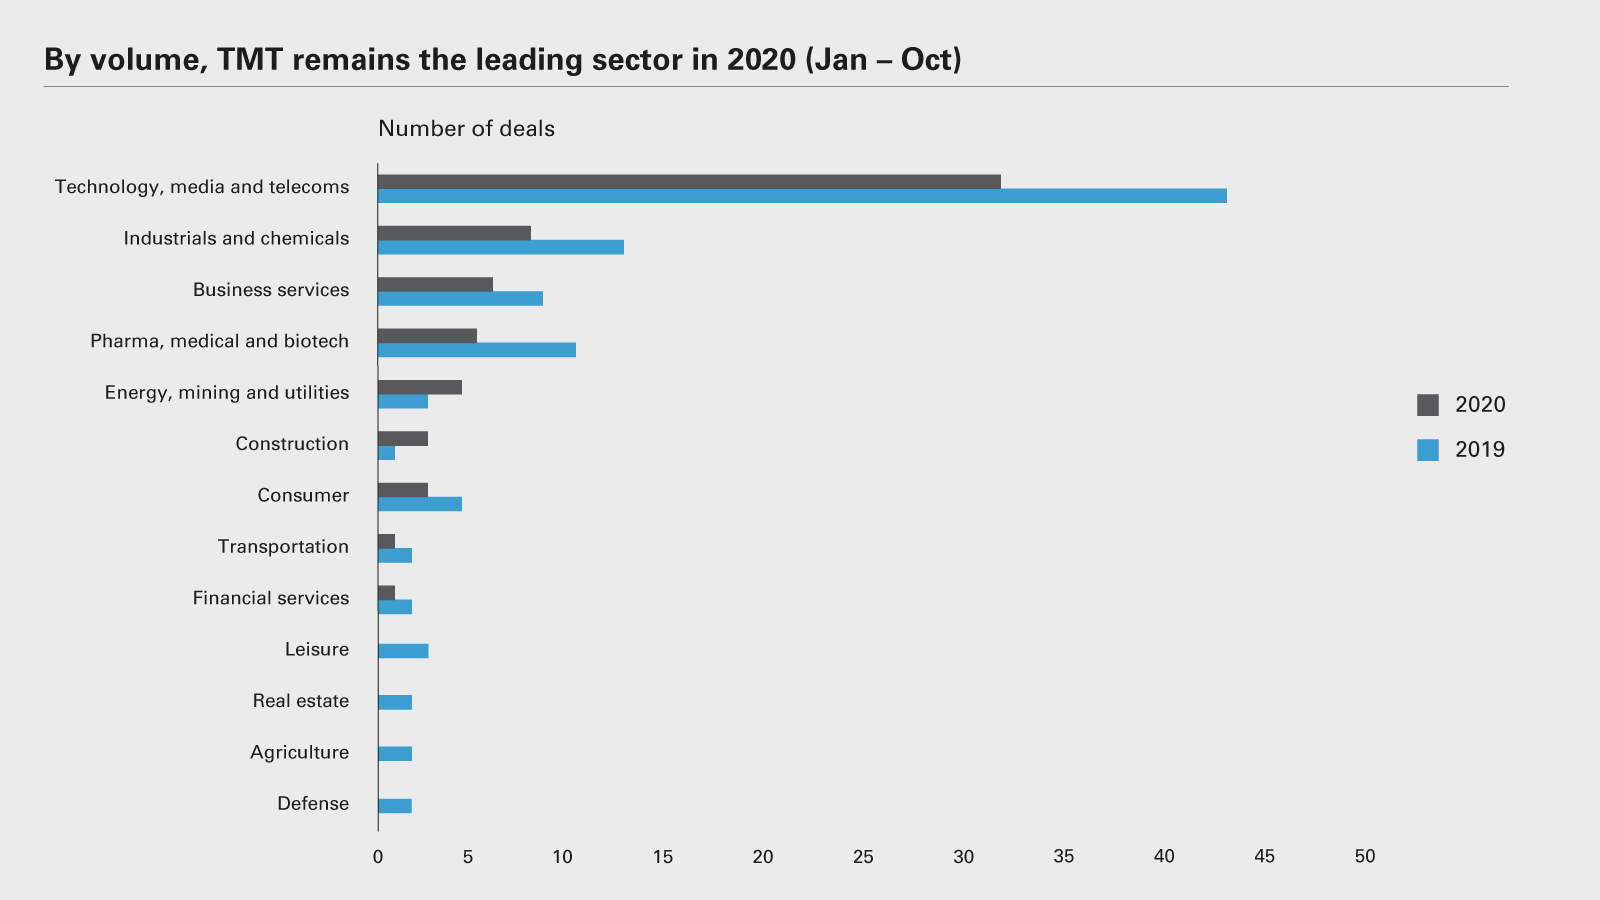 By volume, TMT remains the leading sector in 2020 (Jan - Oct)